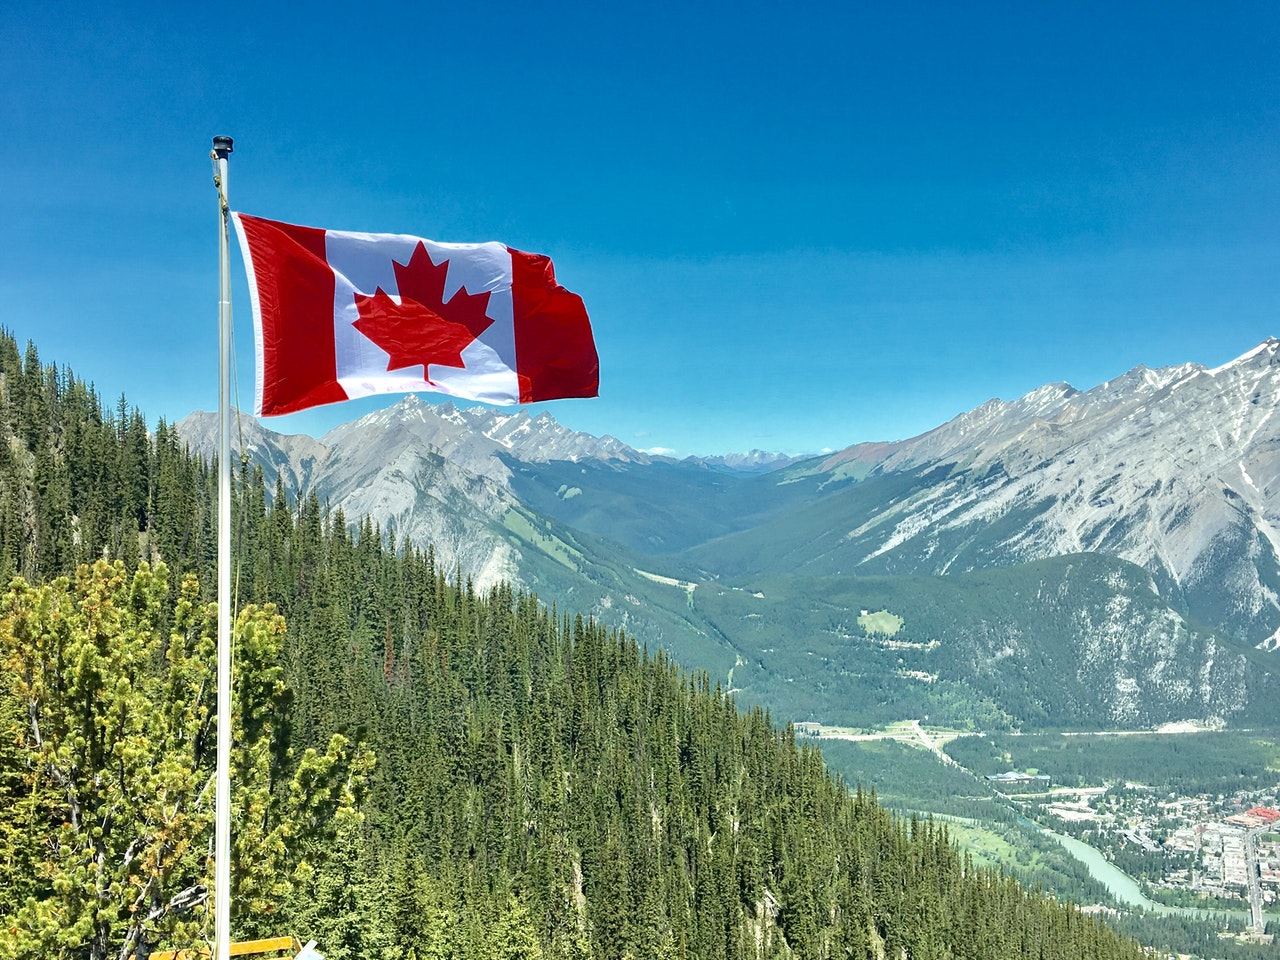 Canada has a place in the world's top 10 economies